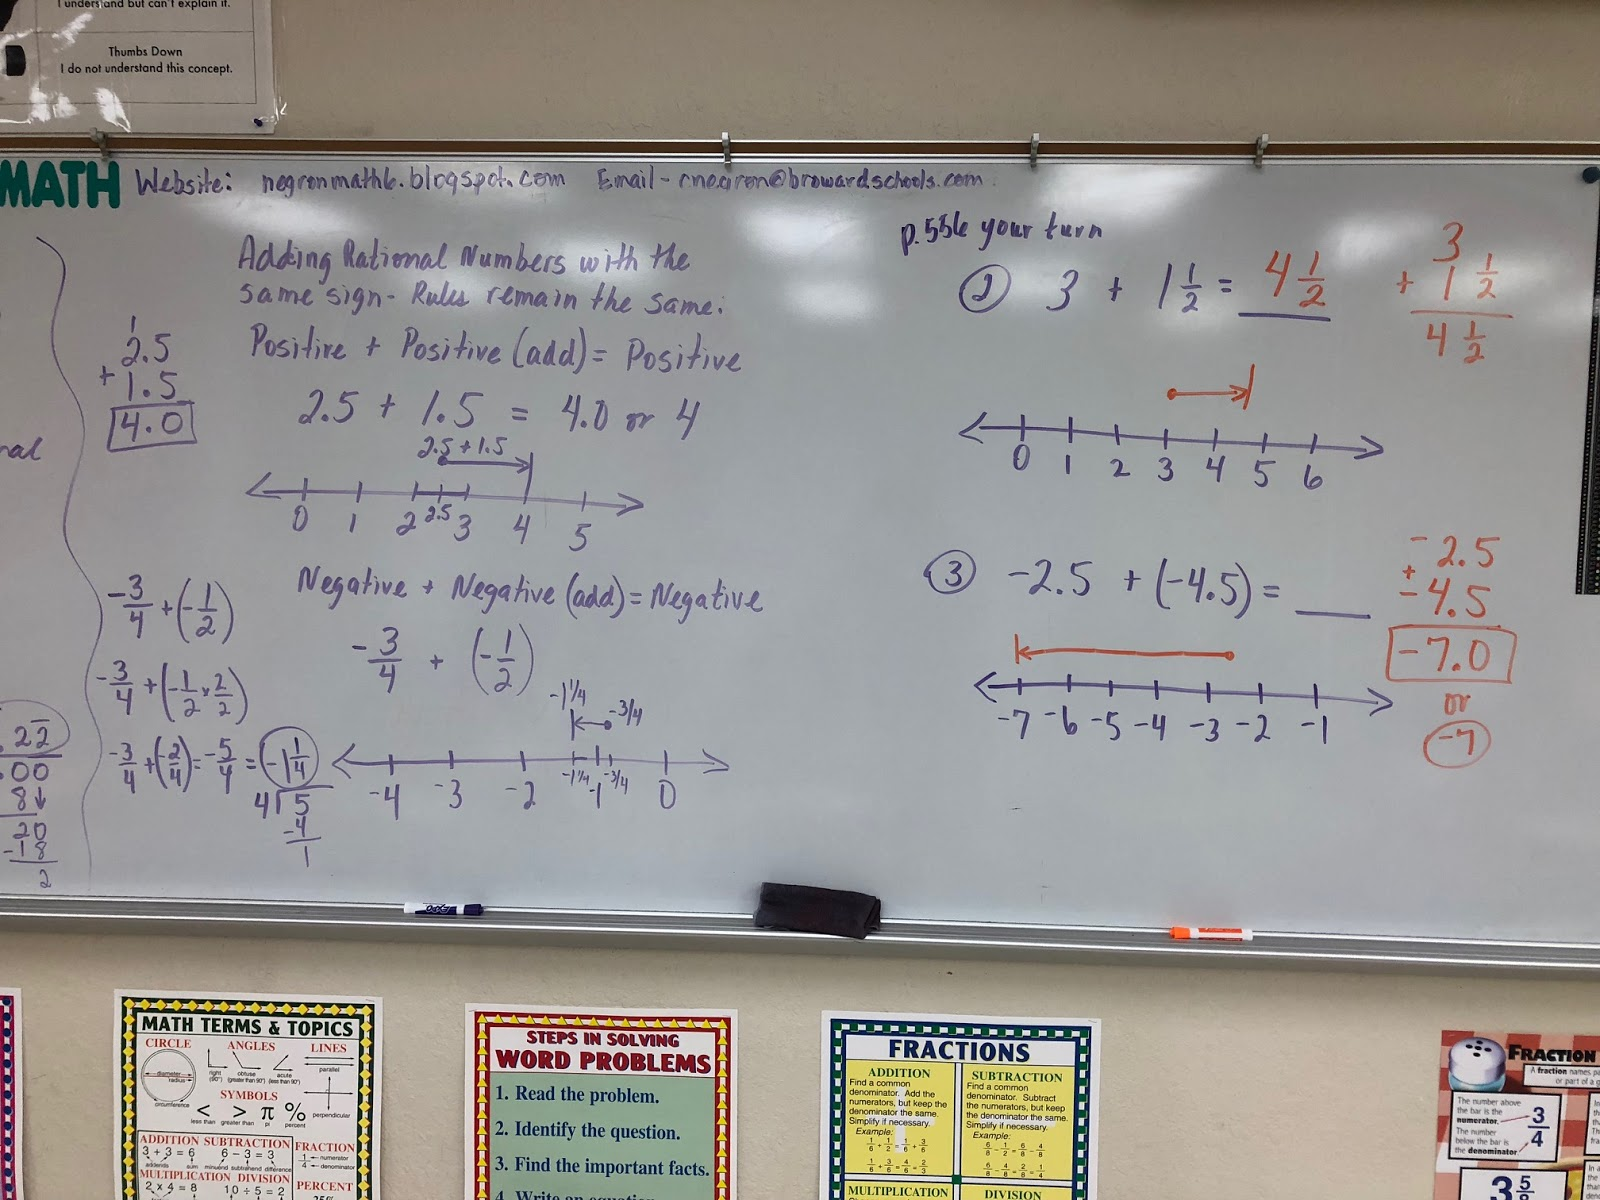 Mrs Negron 6th Grade Math Class Lesson 19 2 Adding Rational Numbers